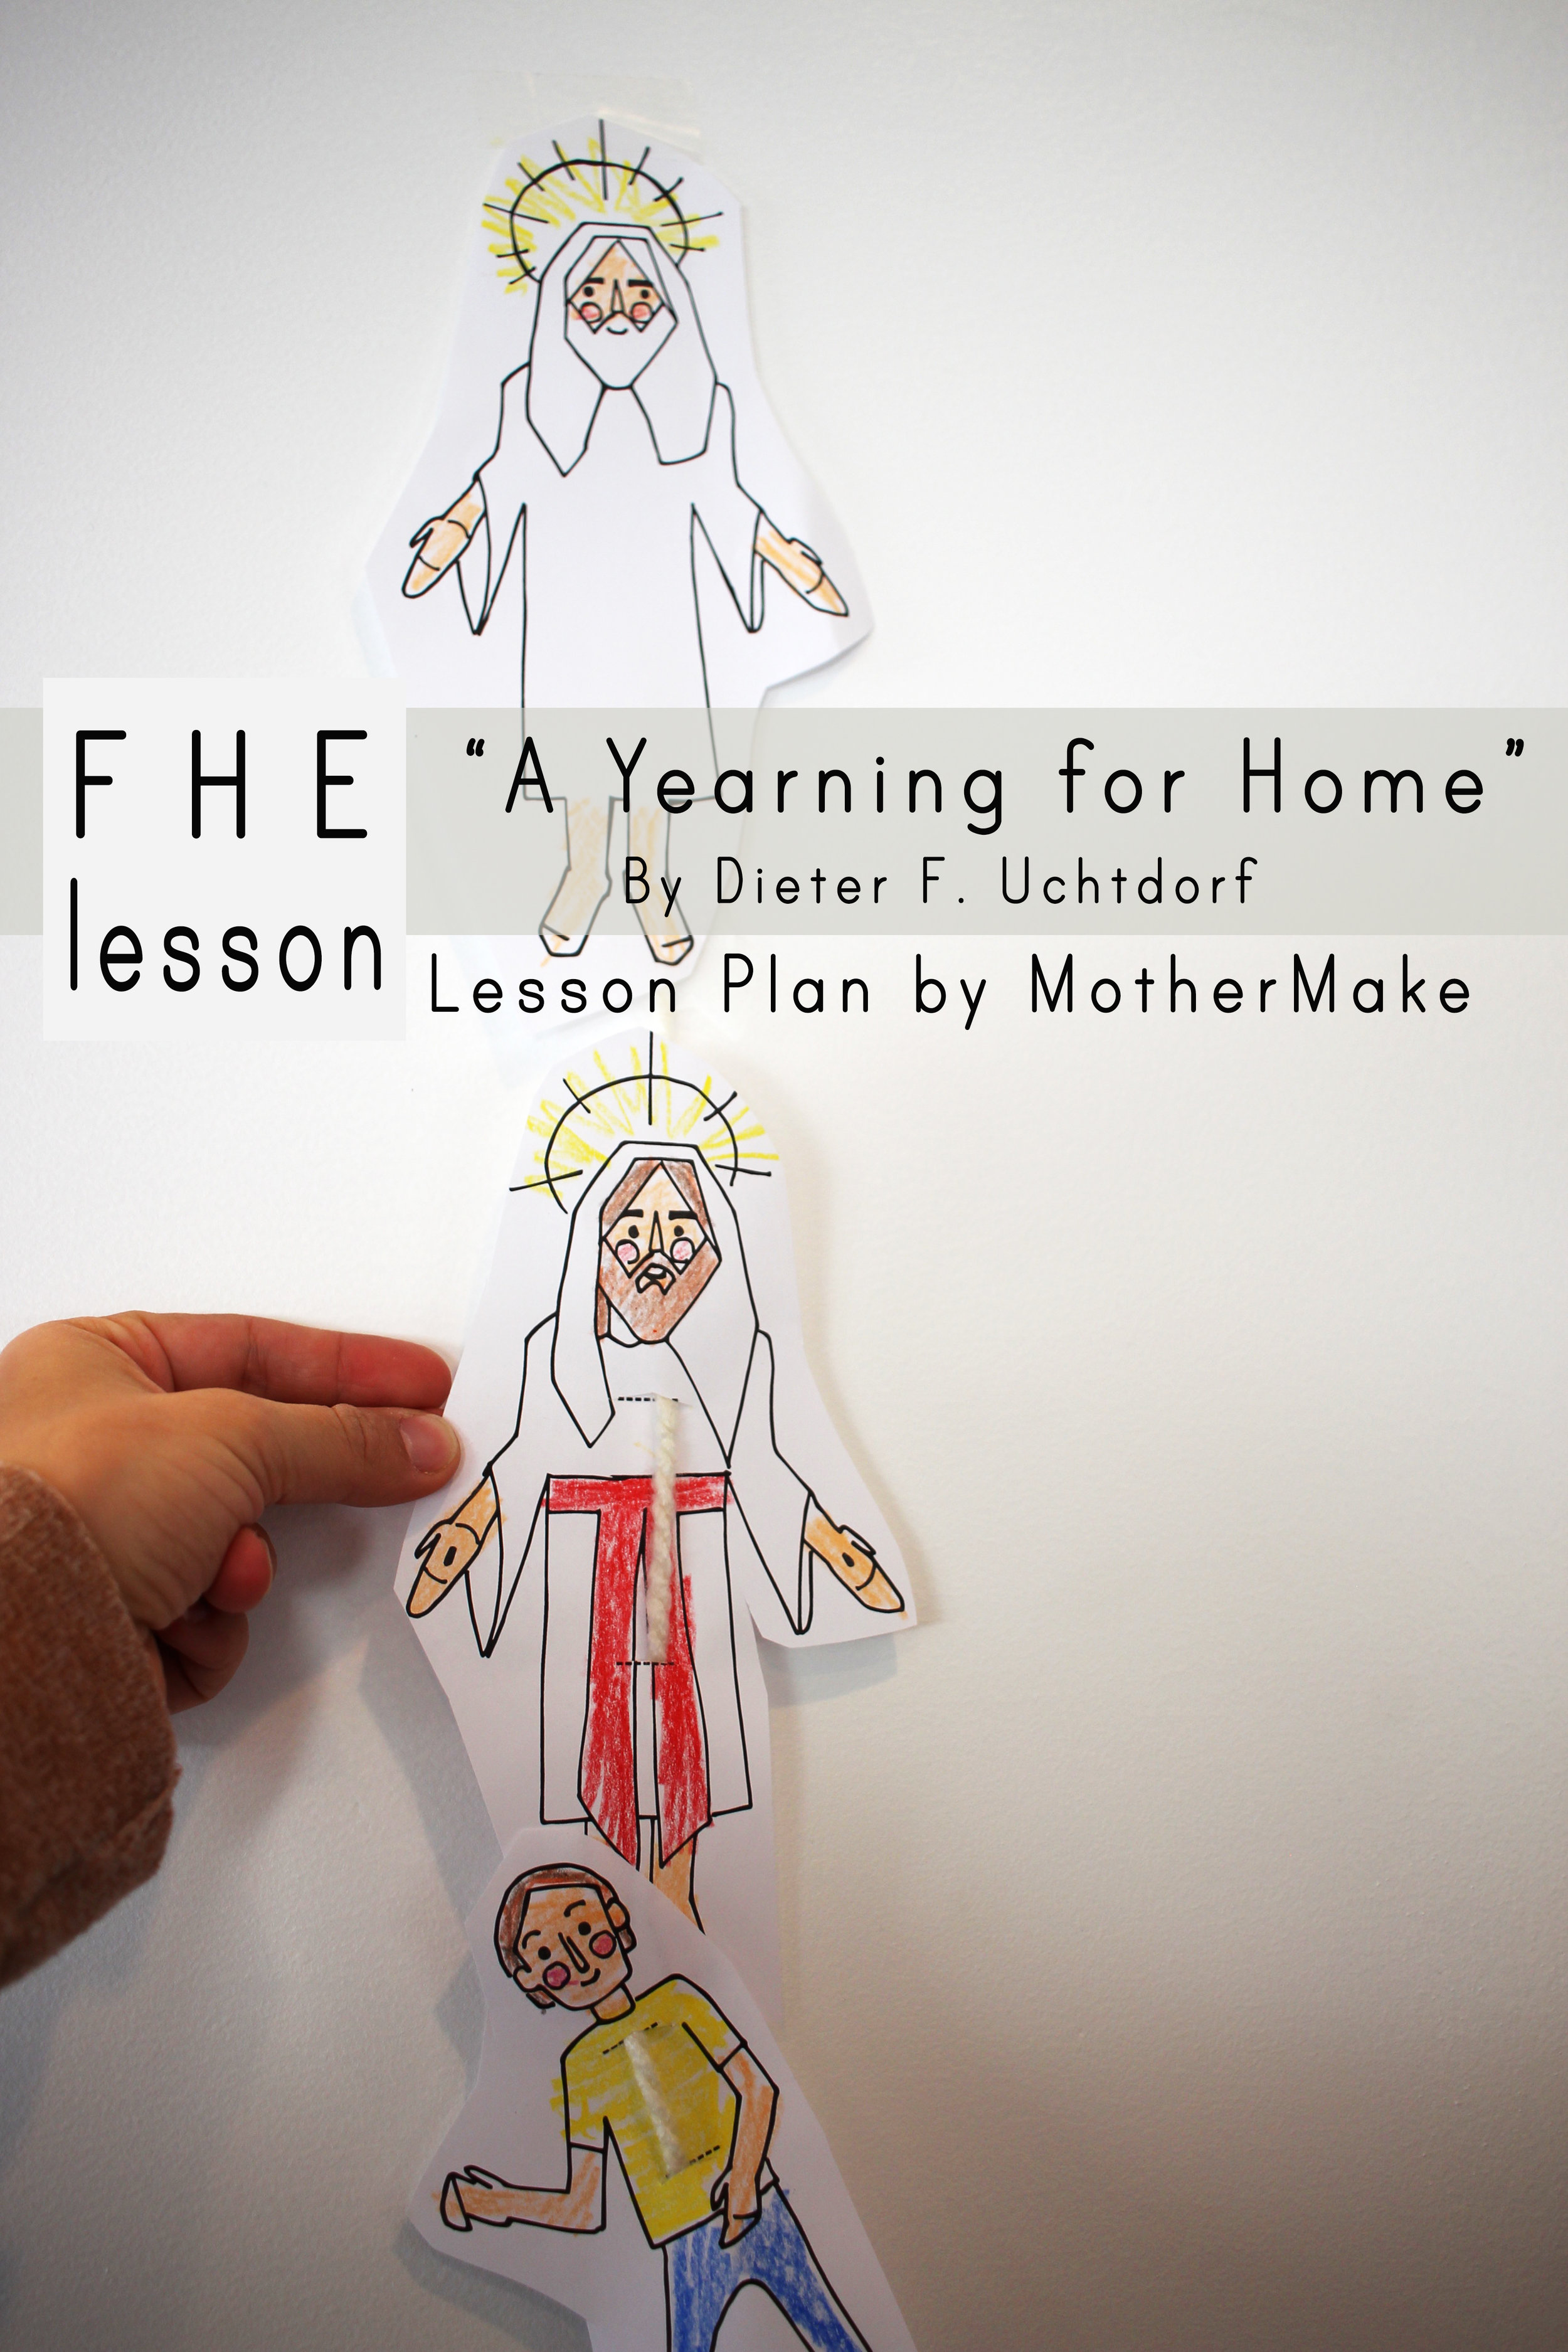 """FHE lesson Plan """"A Yearning for Home"""" by Dieter F. Uchtodorf"""